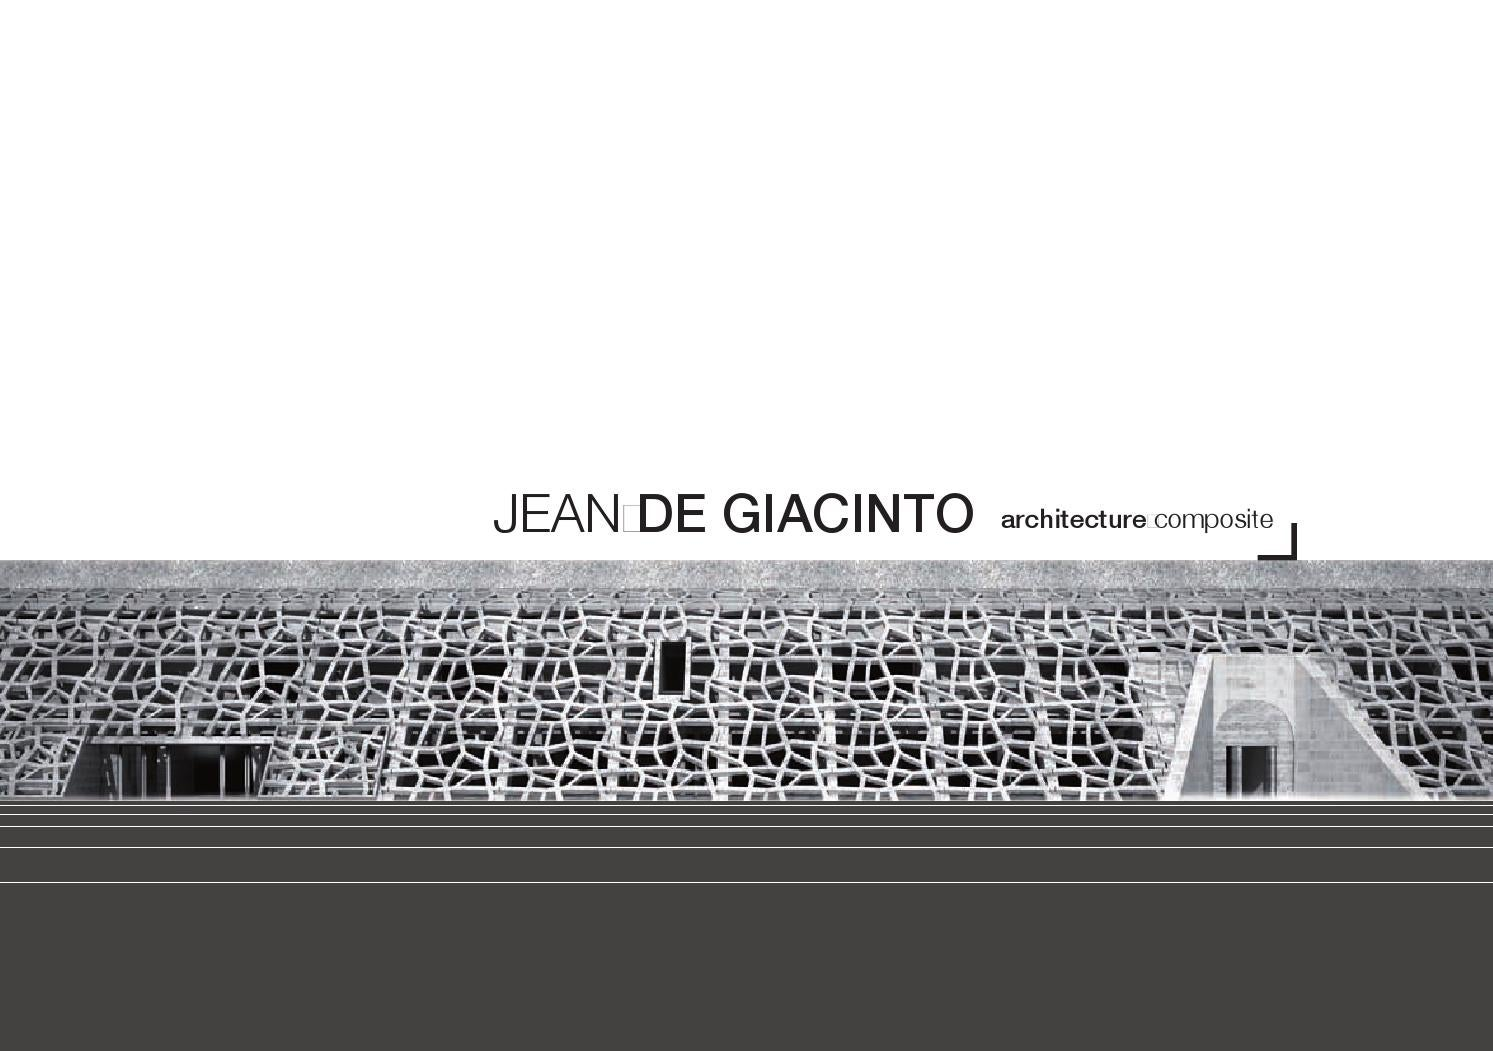 plaquette jean de giacinto architecture composite by jean de giacinto architecture issuu. Black Bedroom Furniture Sets. Home Design Ideas